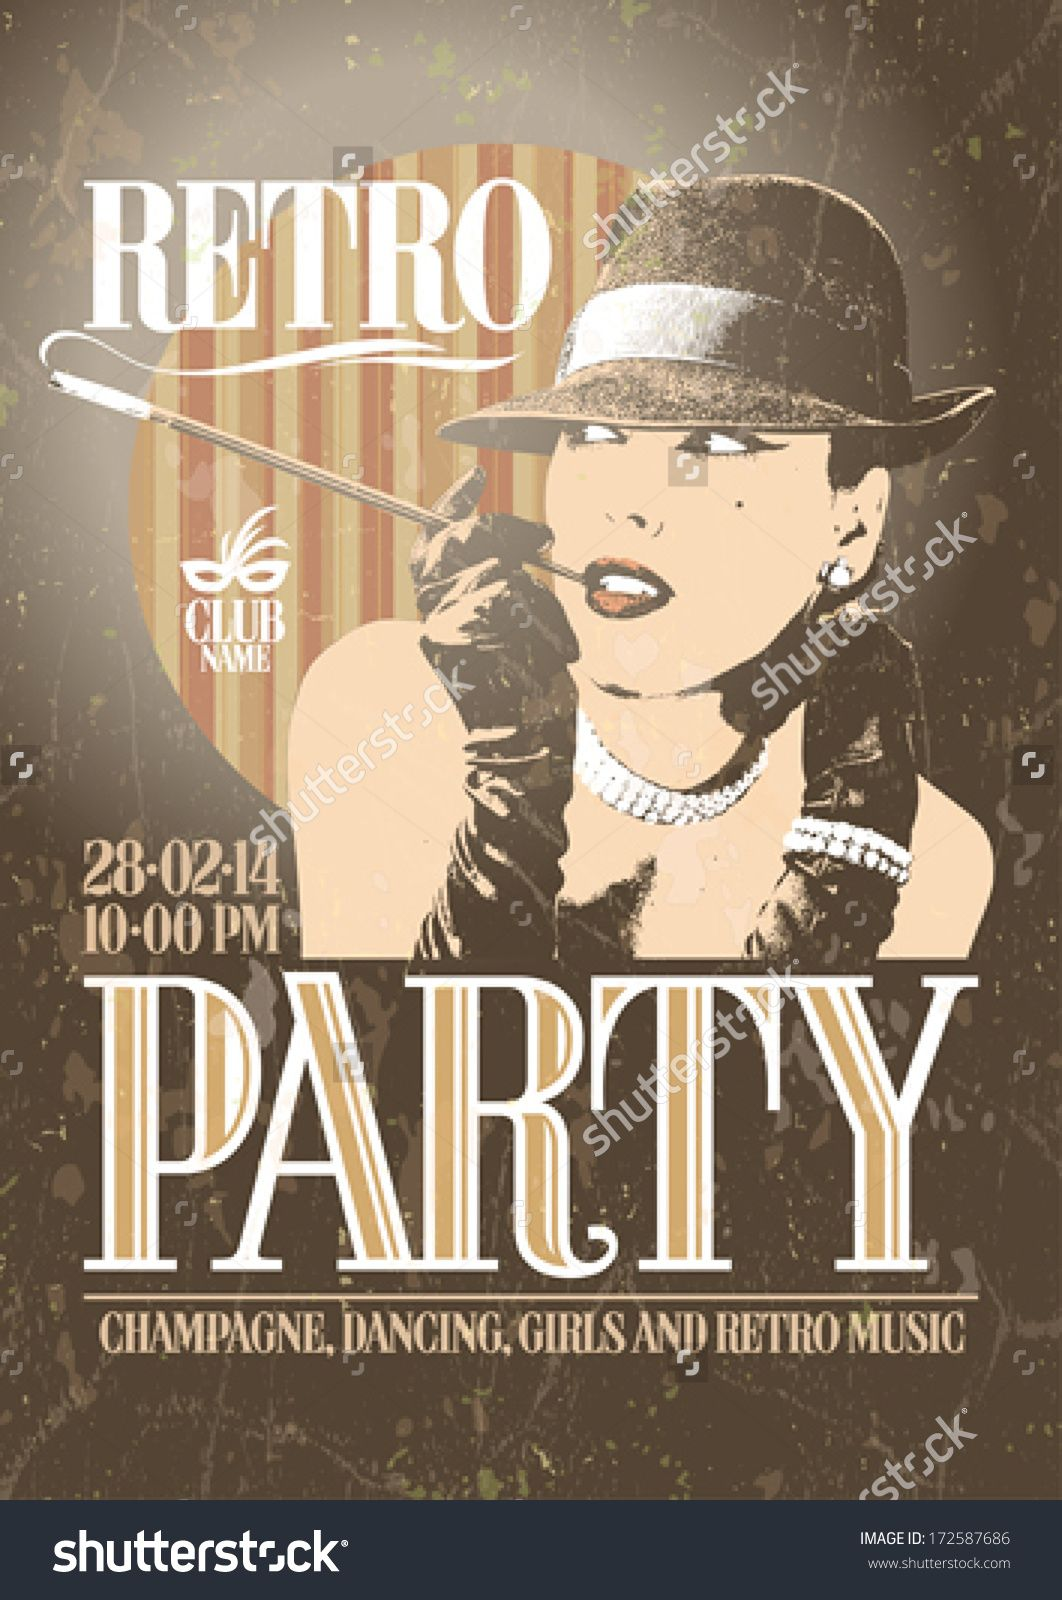 stock-vector-retro-party-poster-with-old-fashioned-smoking-woman-in-a-hat-eps-172587686.jpg (1062×1600)